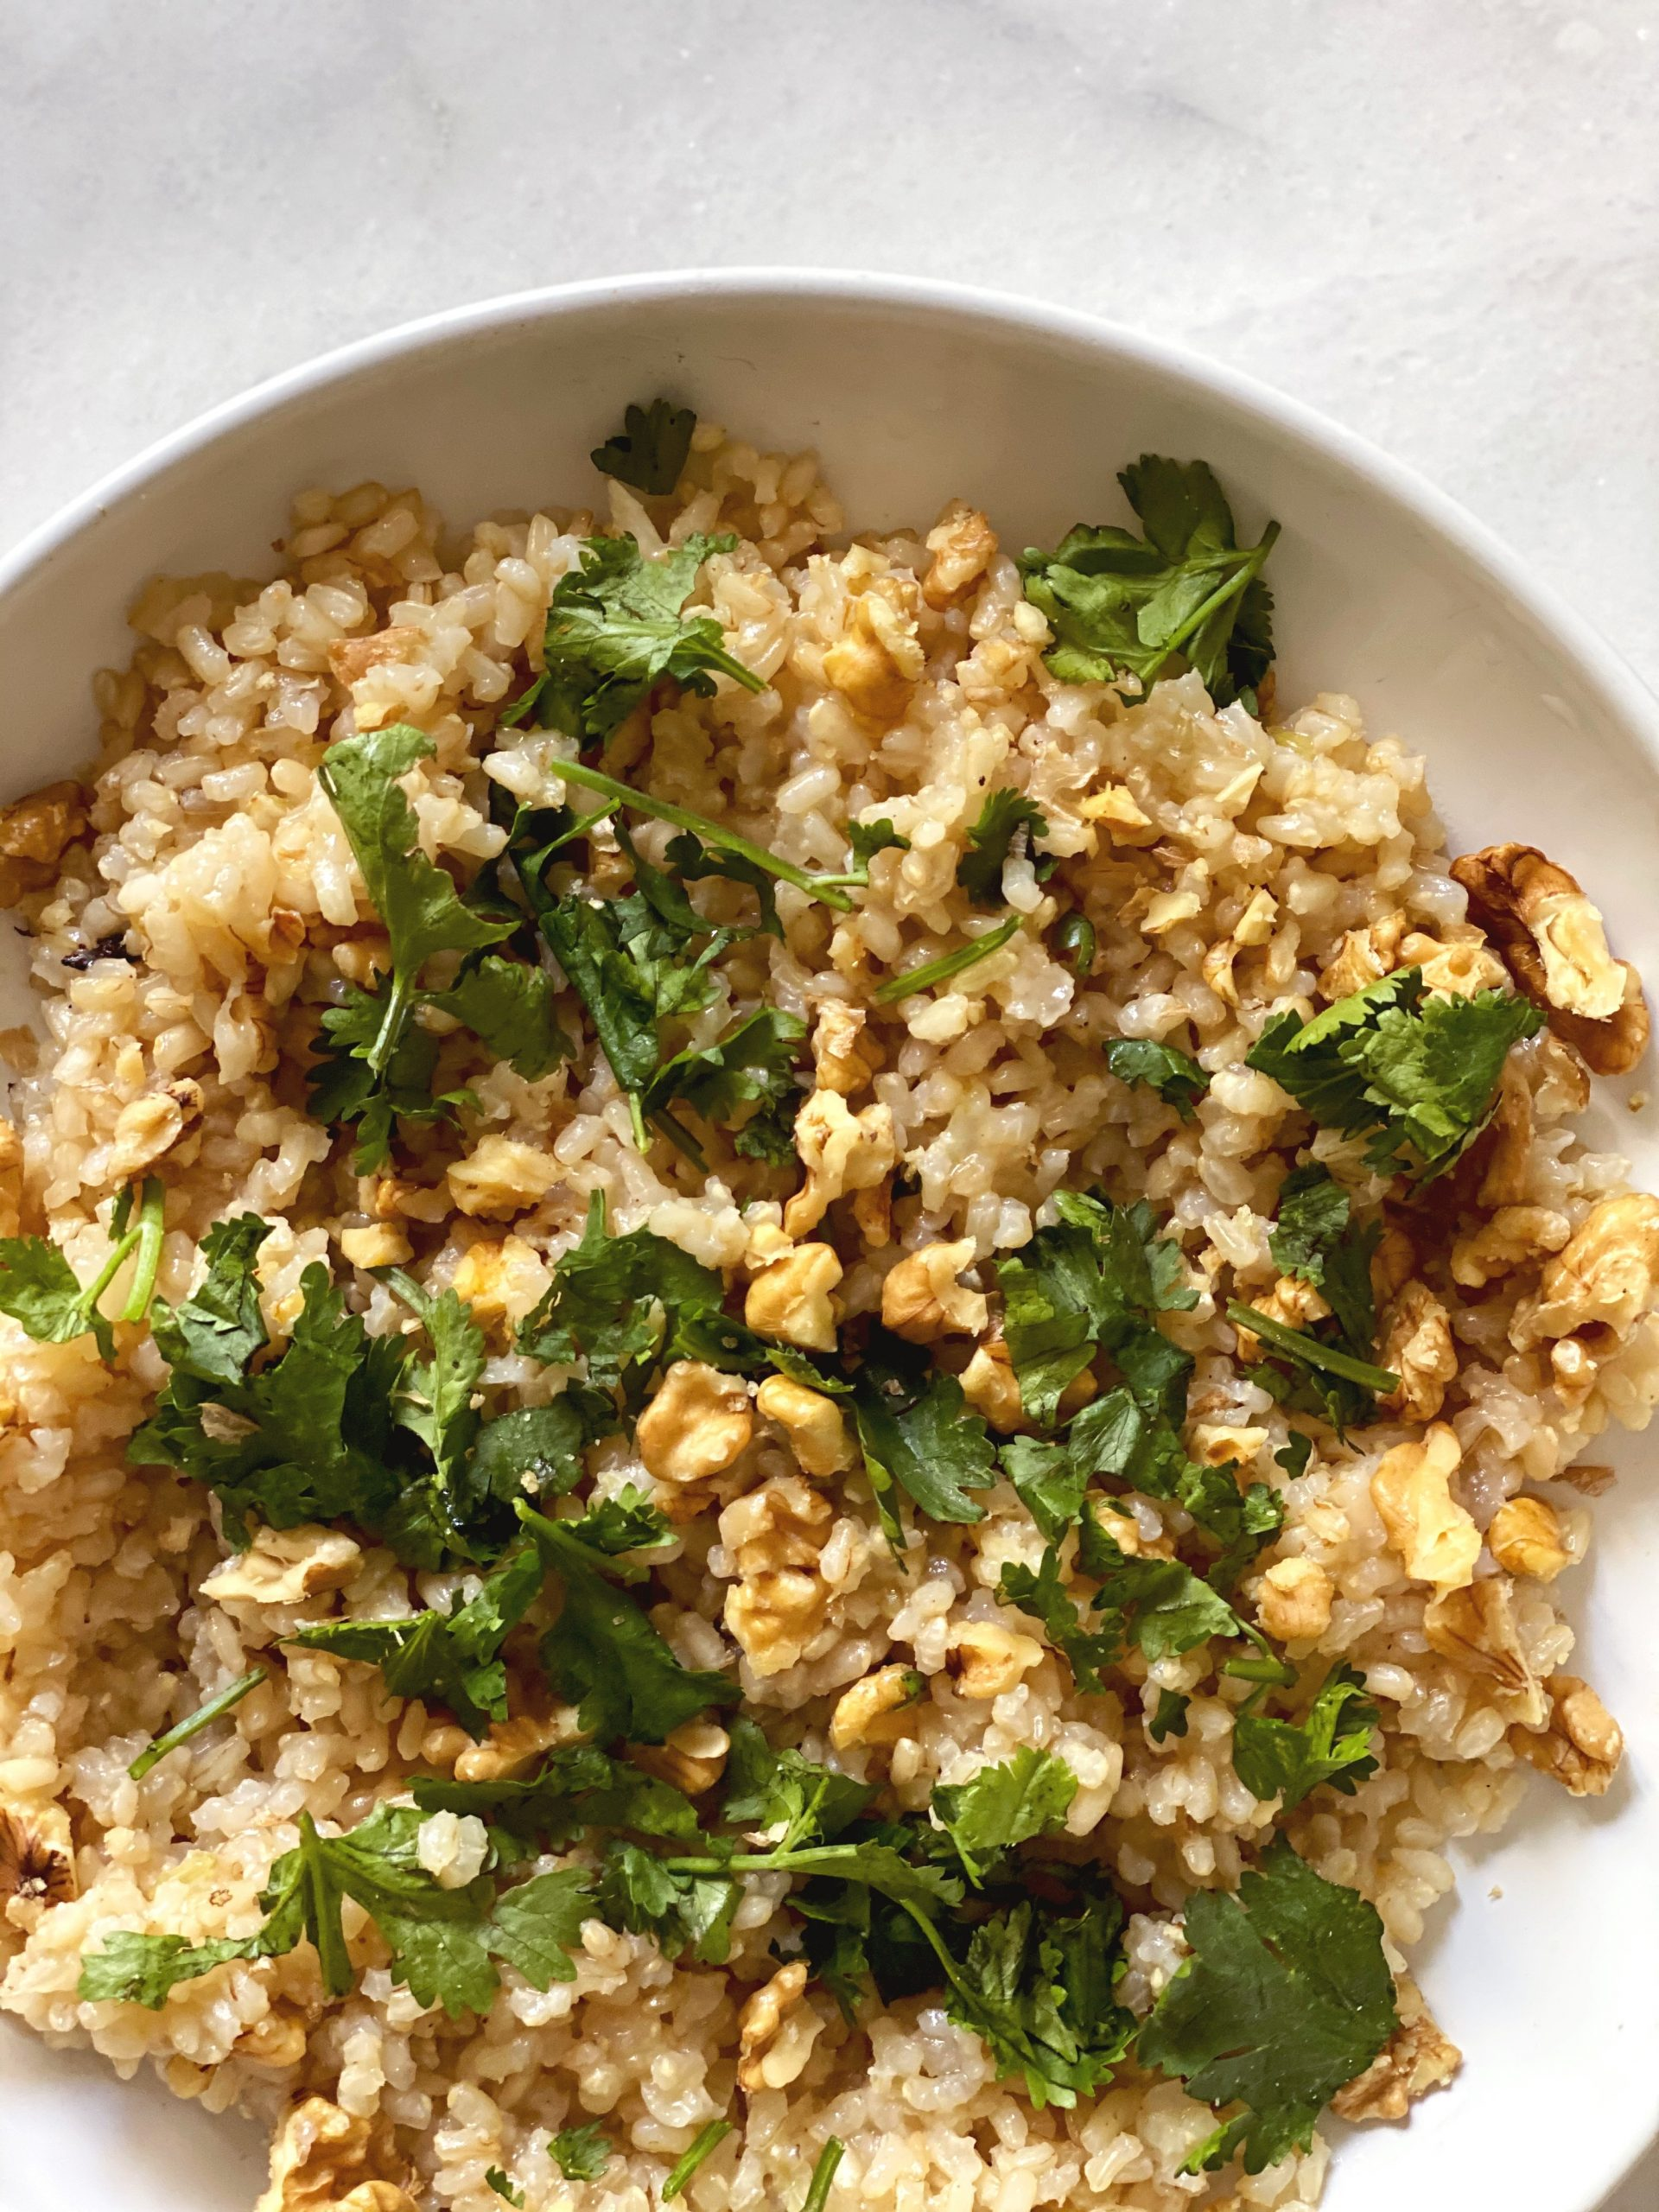 Arroz integral con nueces y cilantro